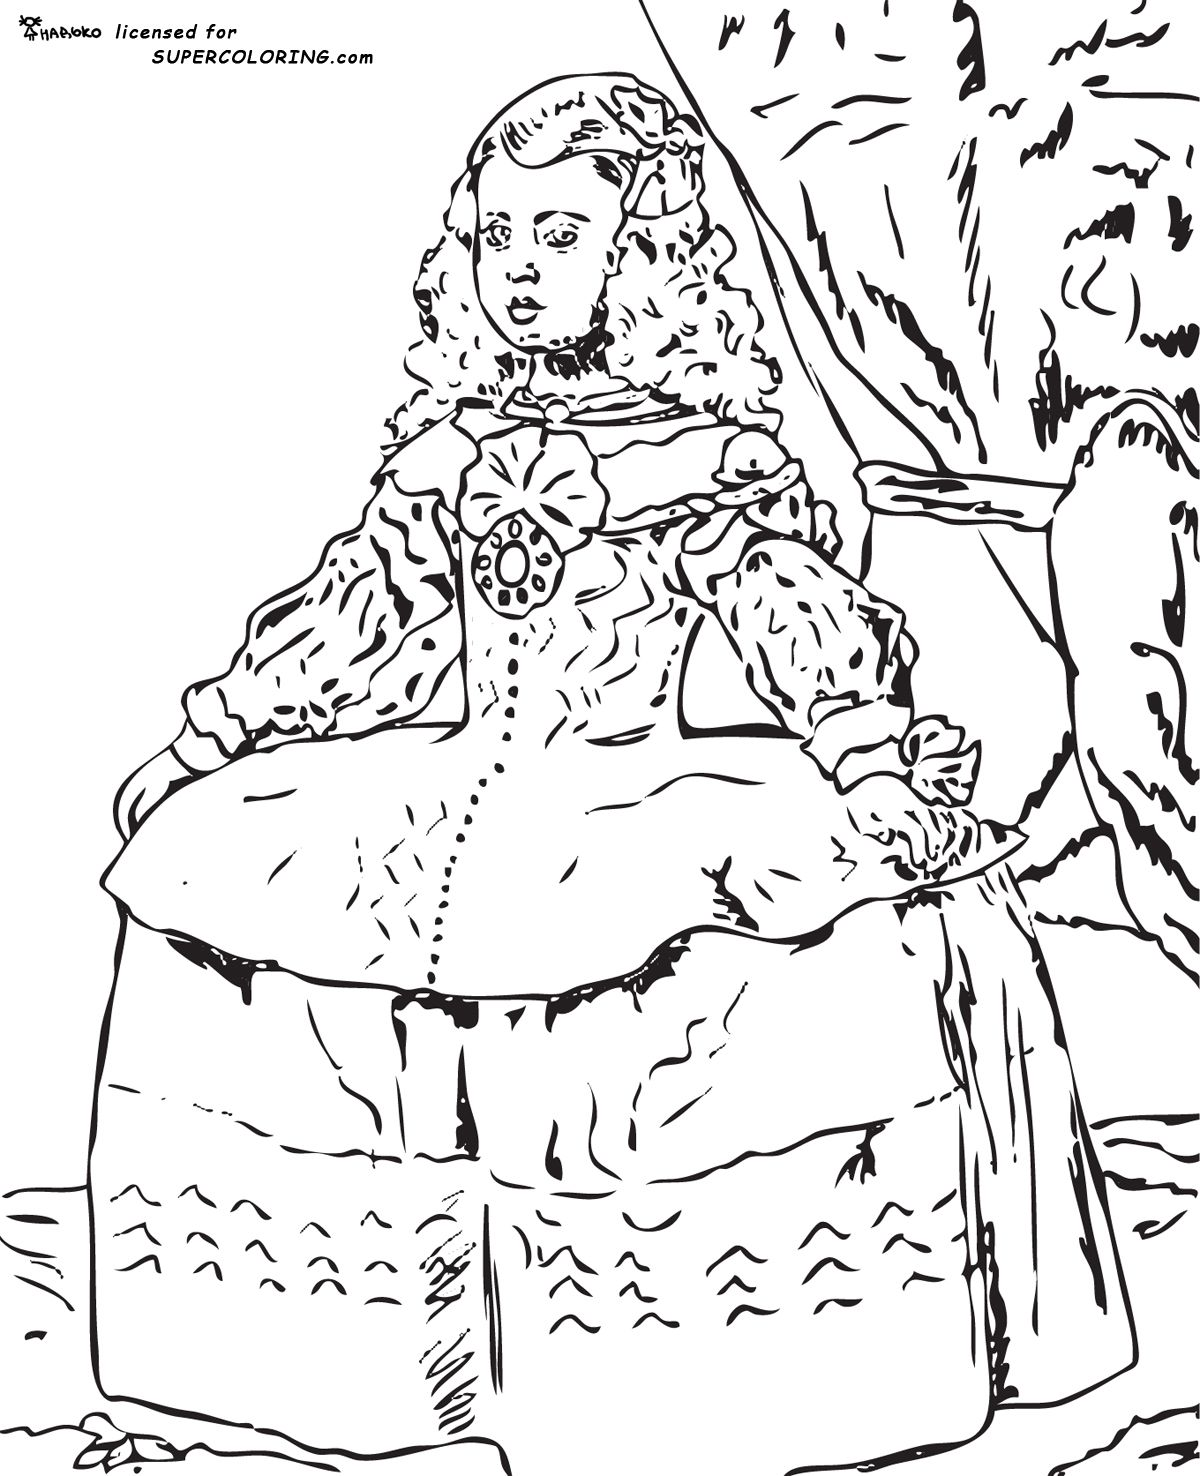 free printable coloring page for diego velazquez. | harmony fine